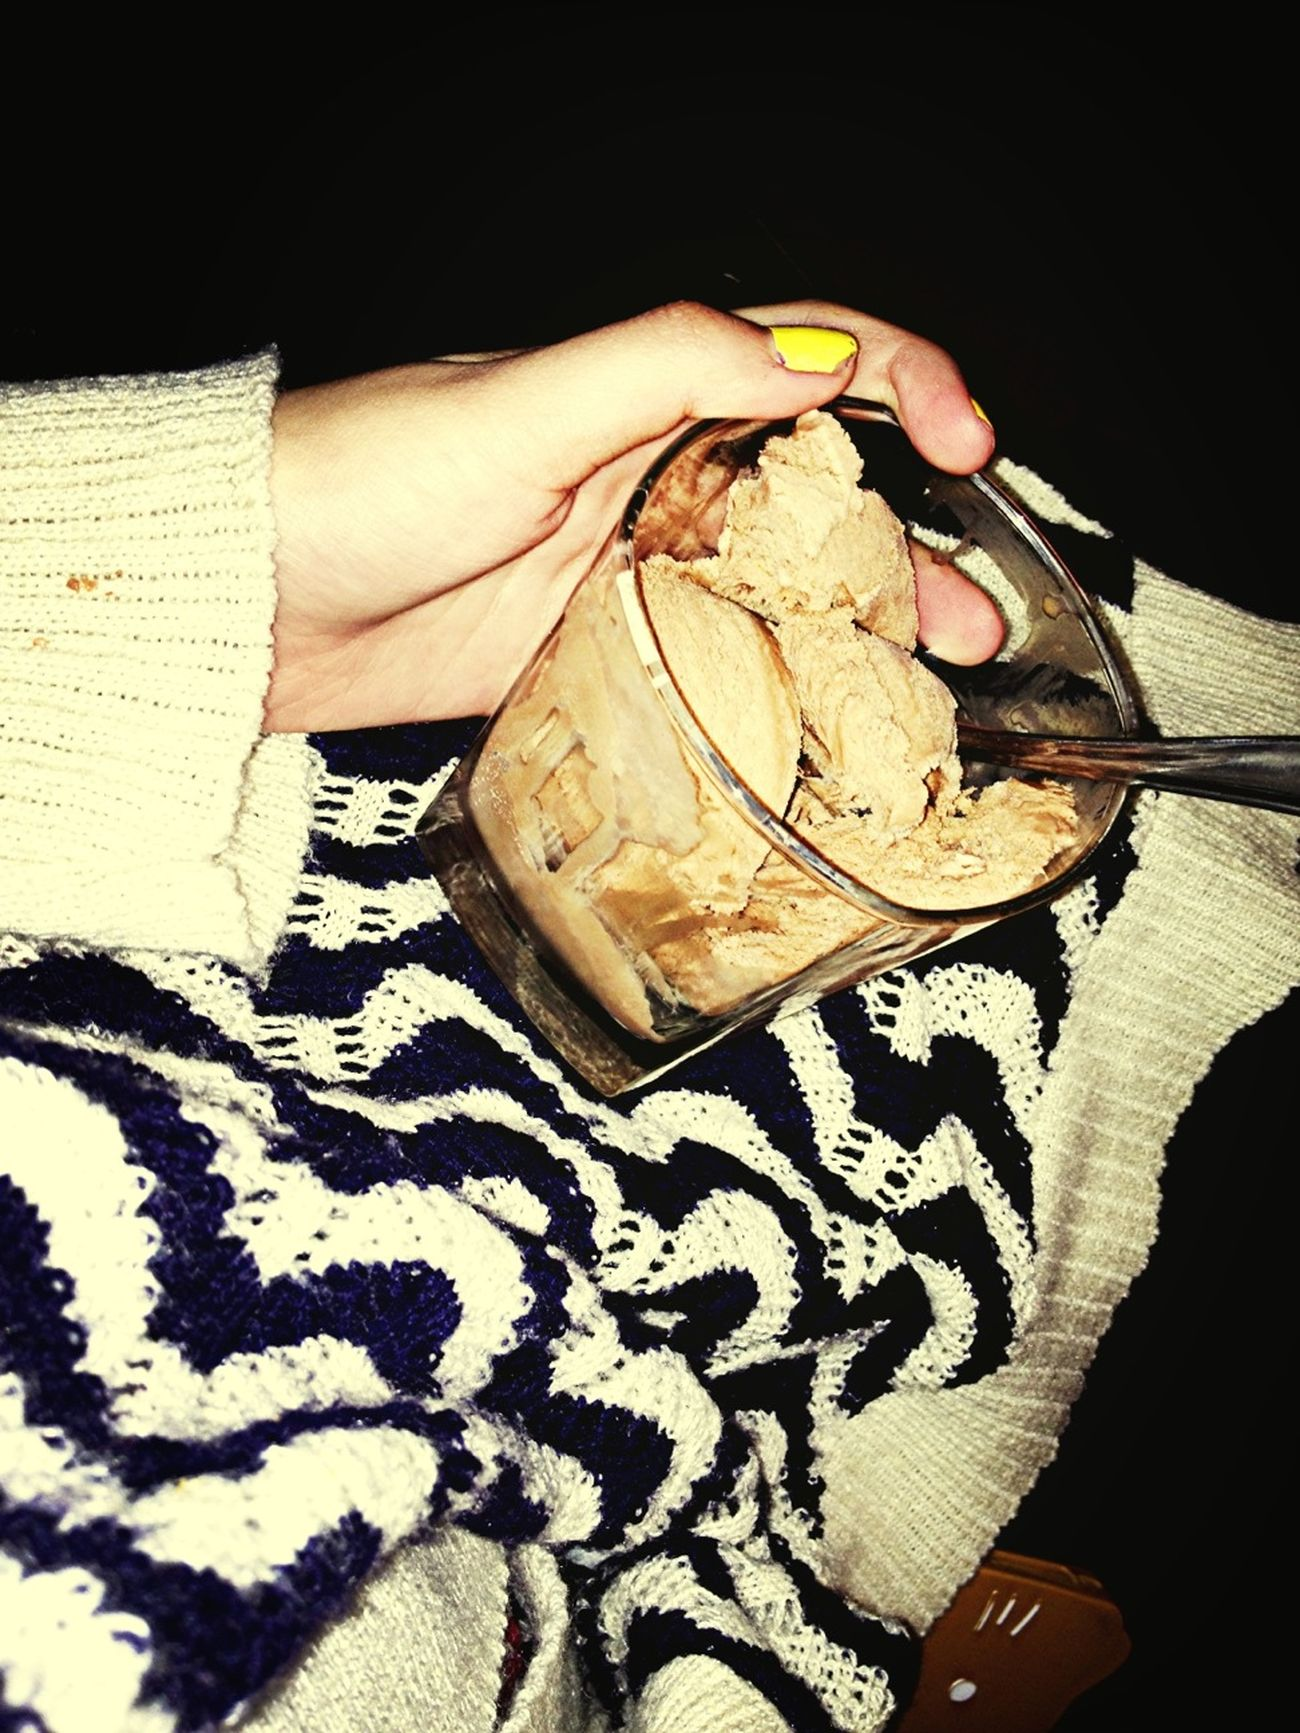 Lifetime Movies And Chocolate Ice Cream